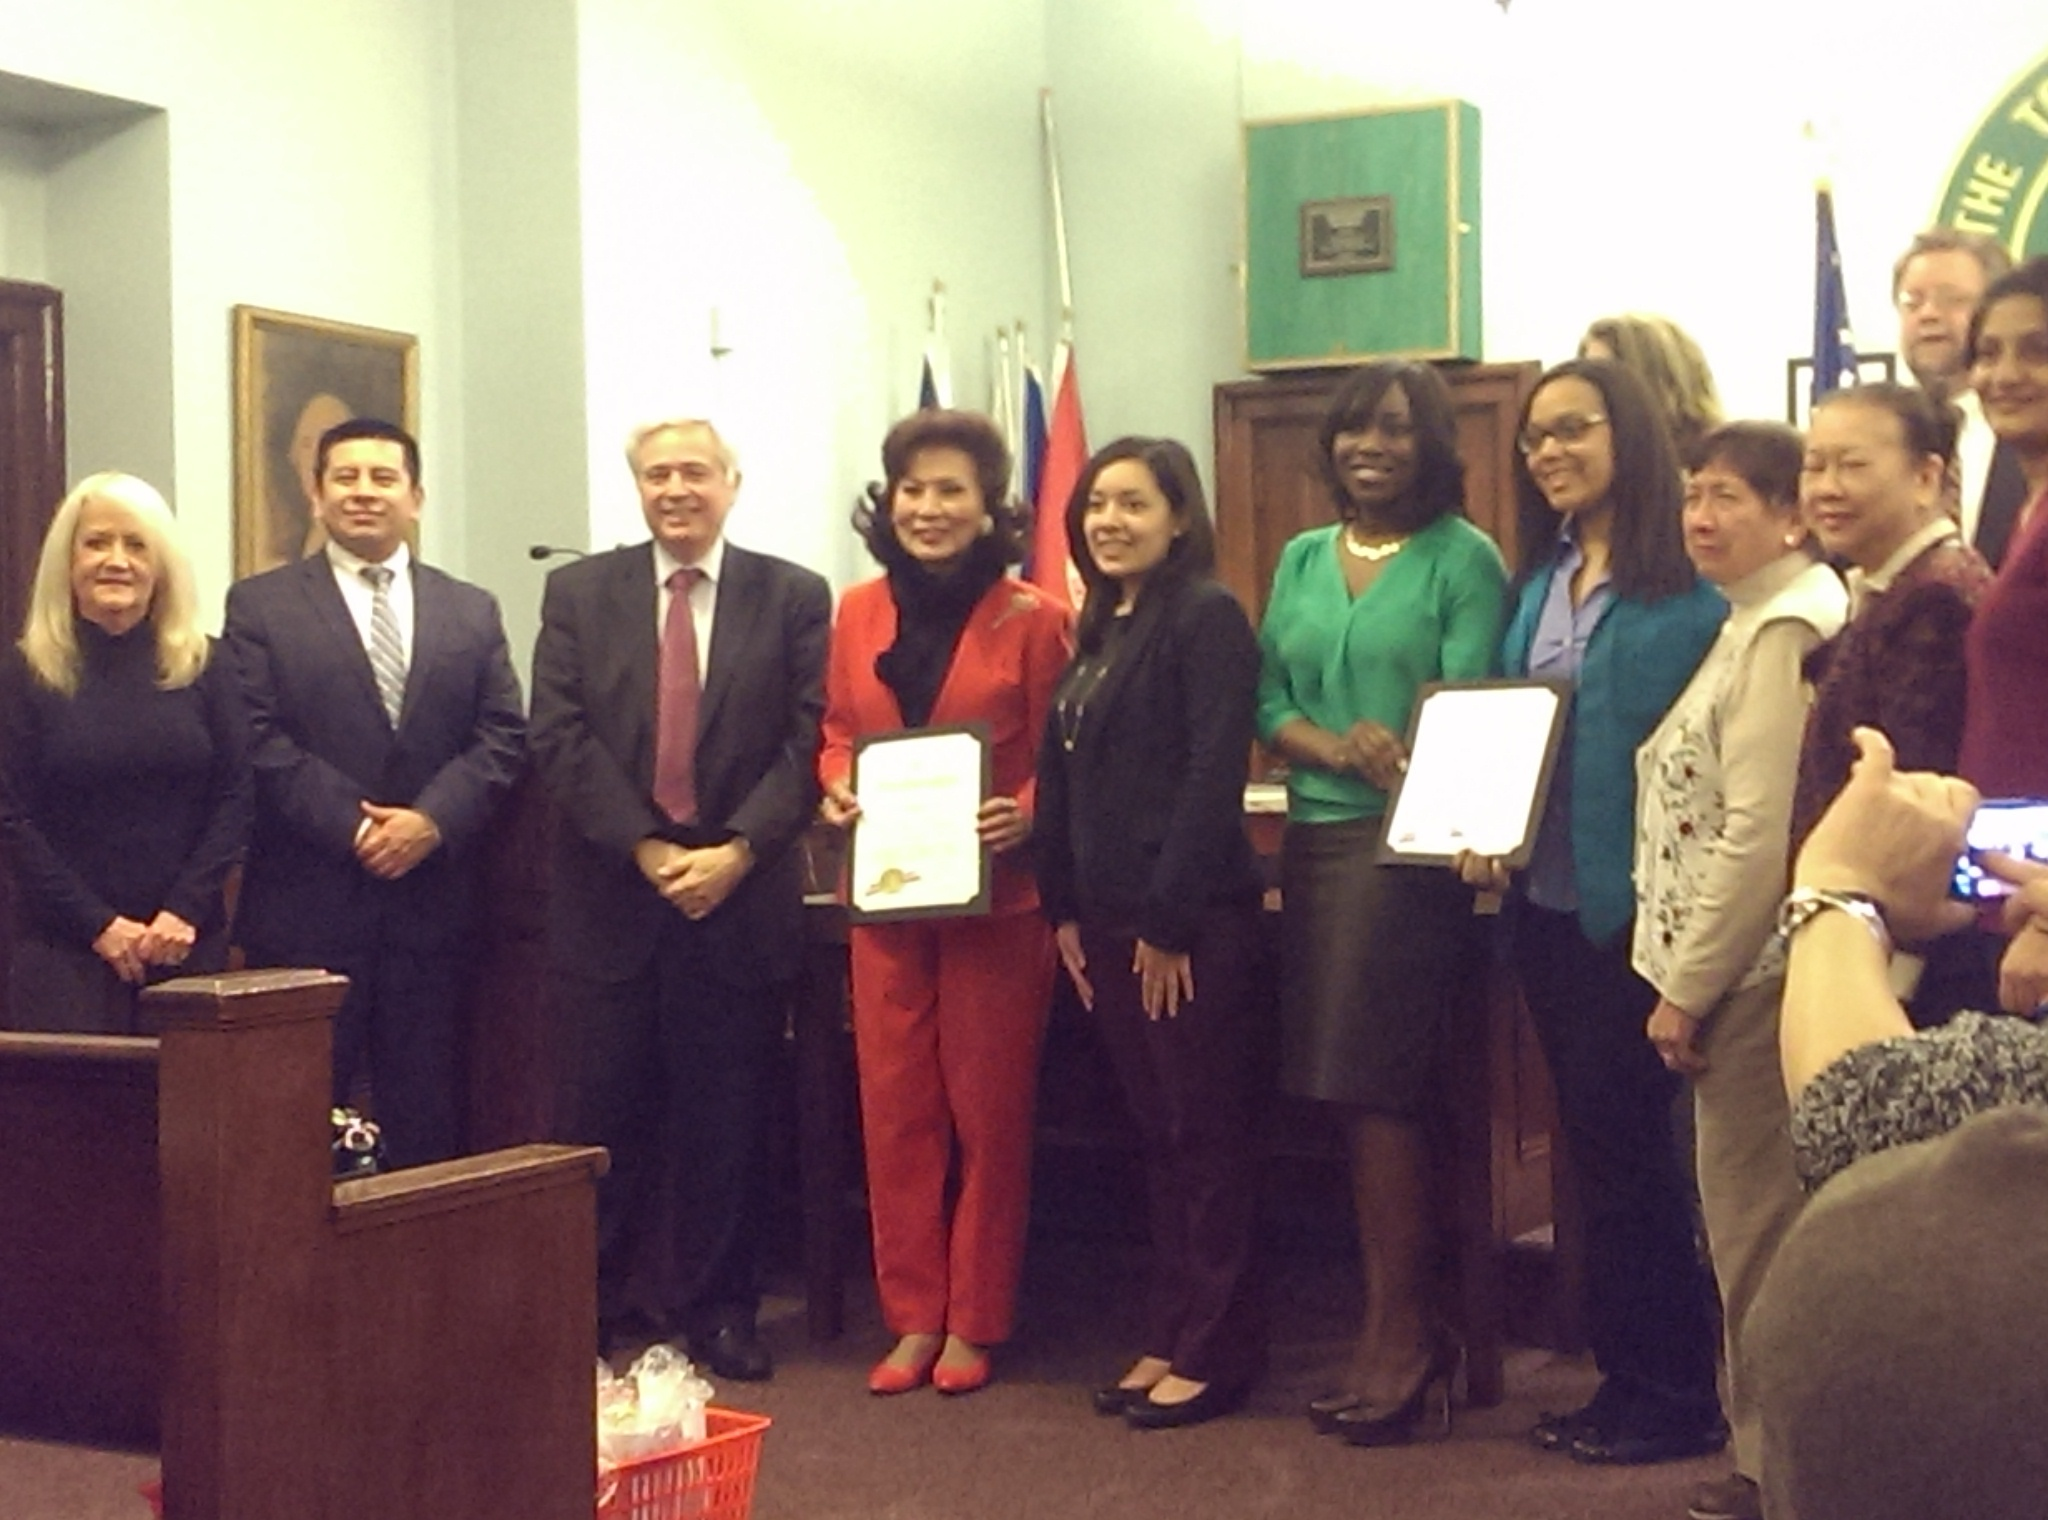 Health Enthusiasts Honored At West Orange Township Council